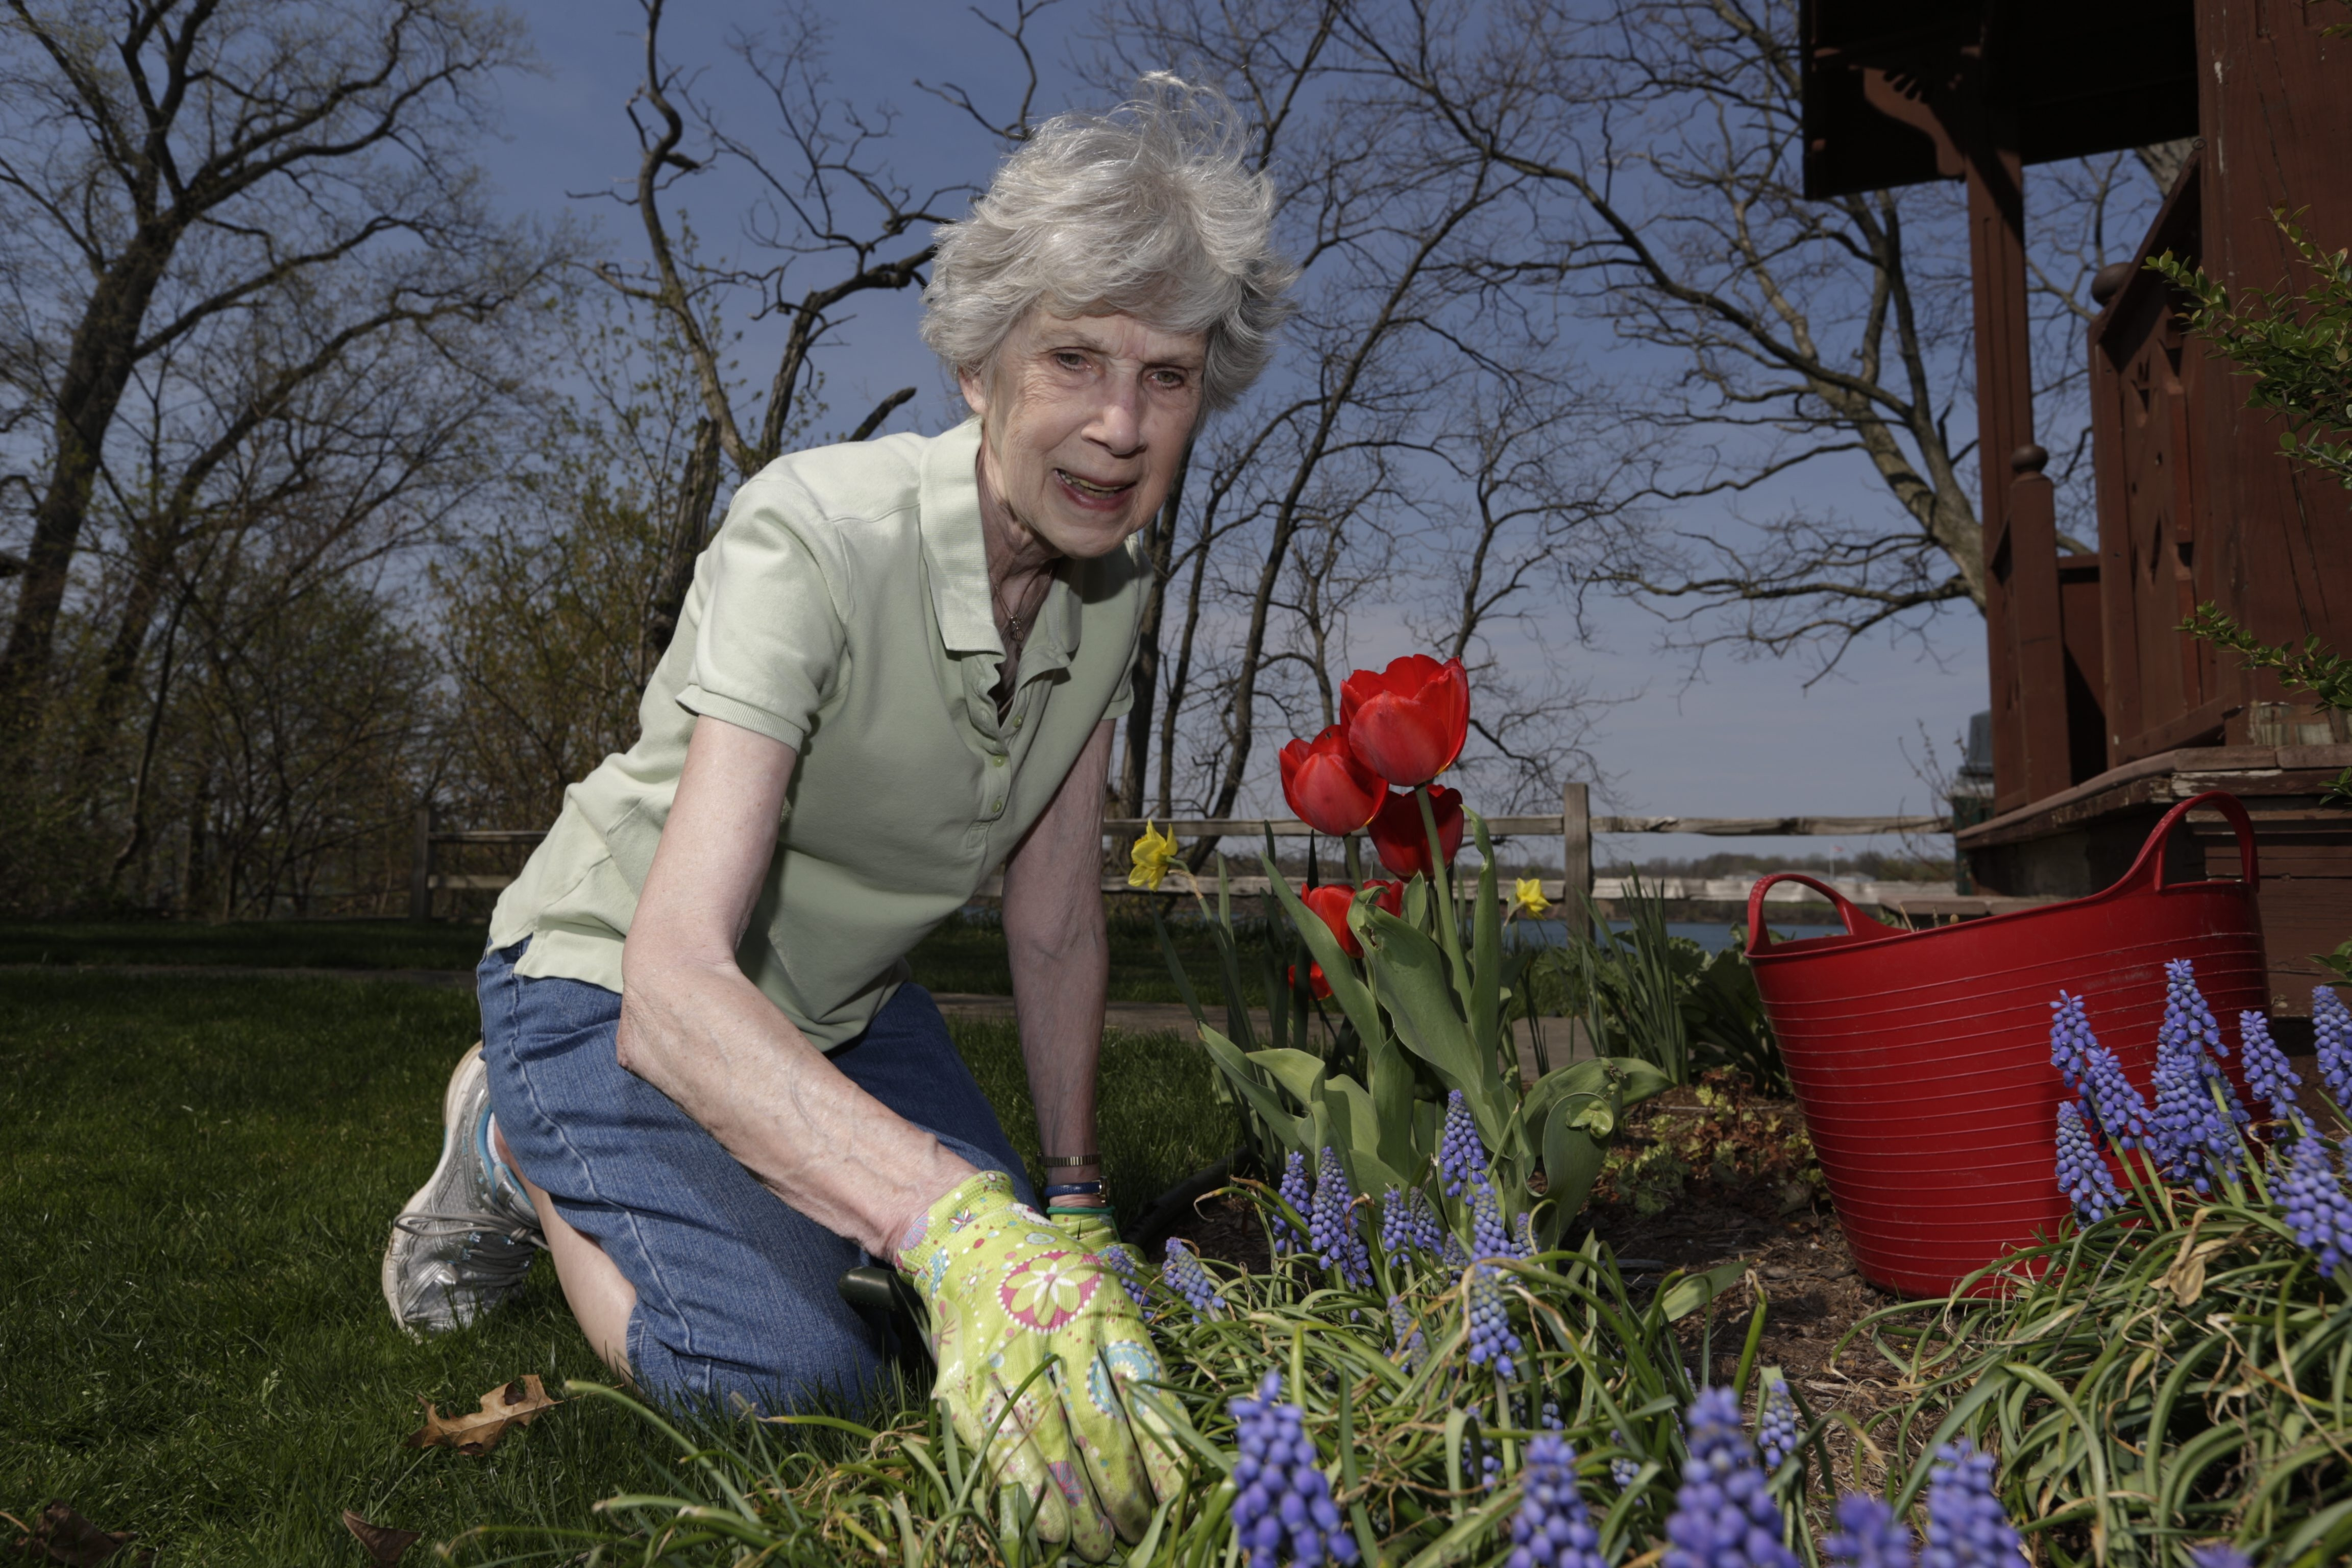 Marjorie McCollum is Youngstown's Citizen of the Year. Since she retired as Town of Porter assessor, she has been busy in many civic organizations.